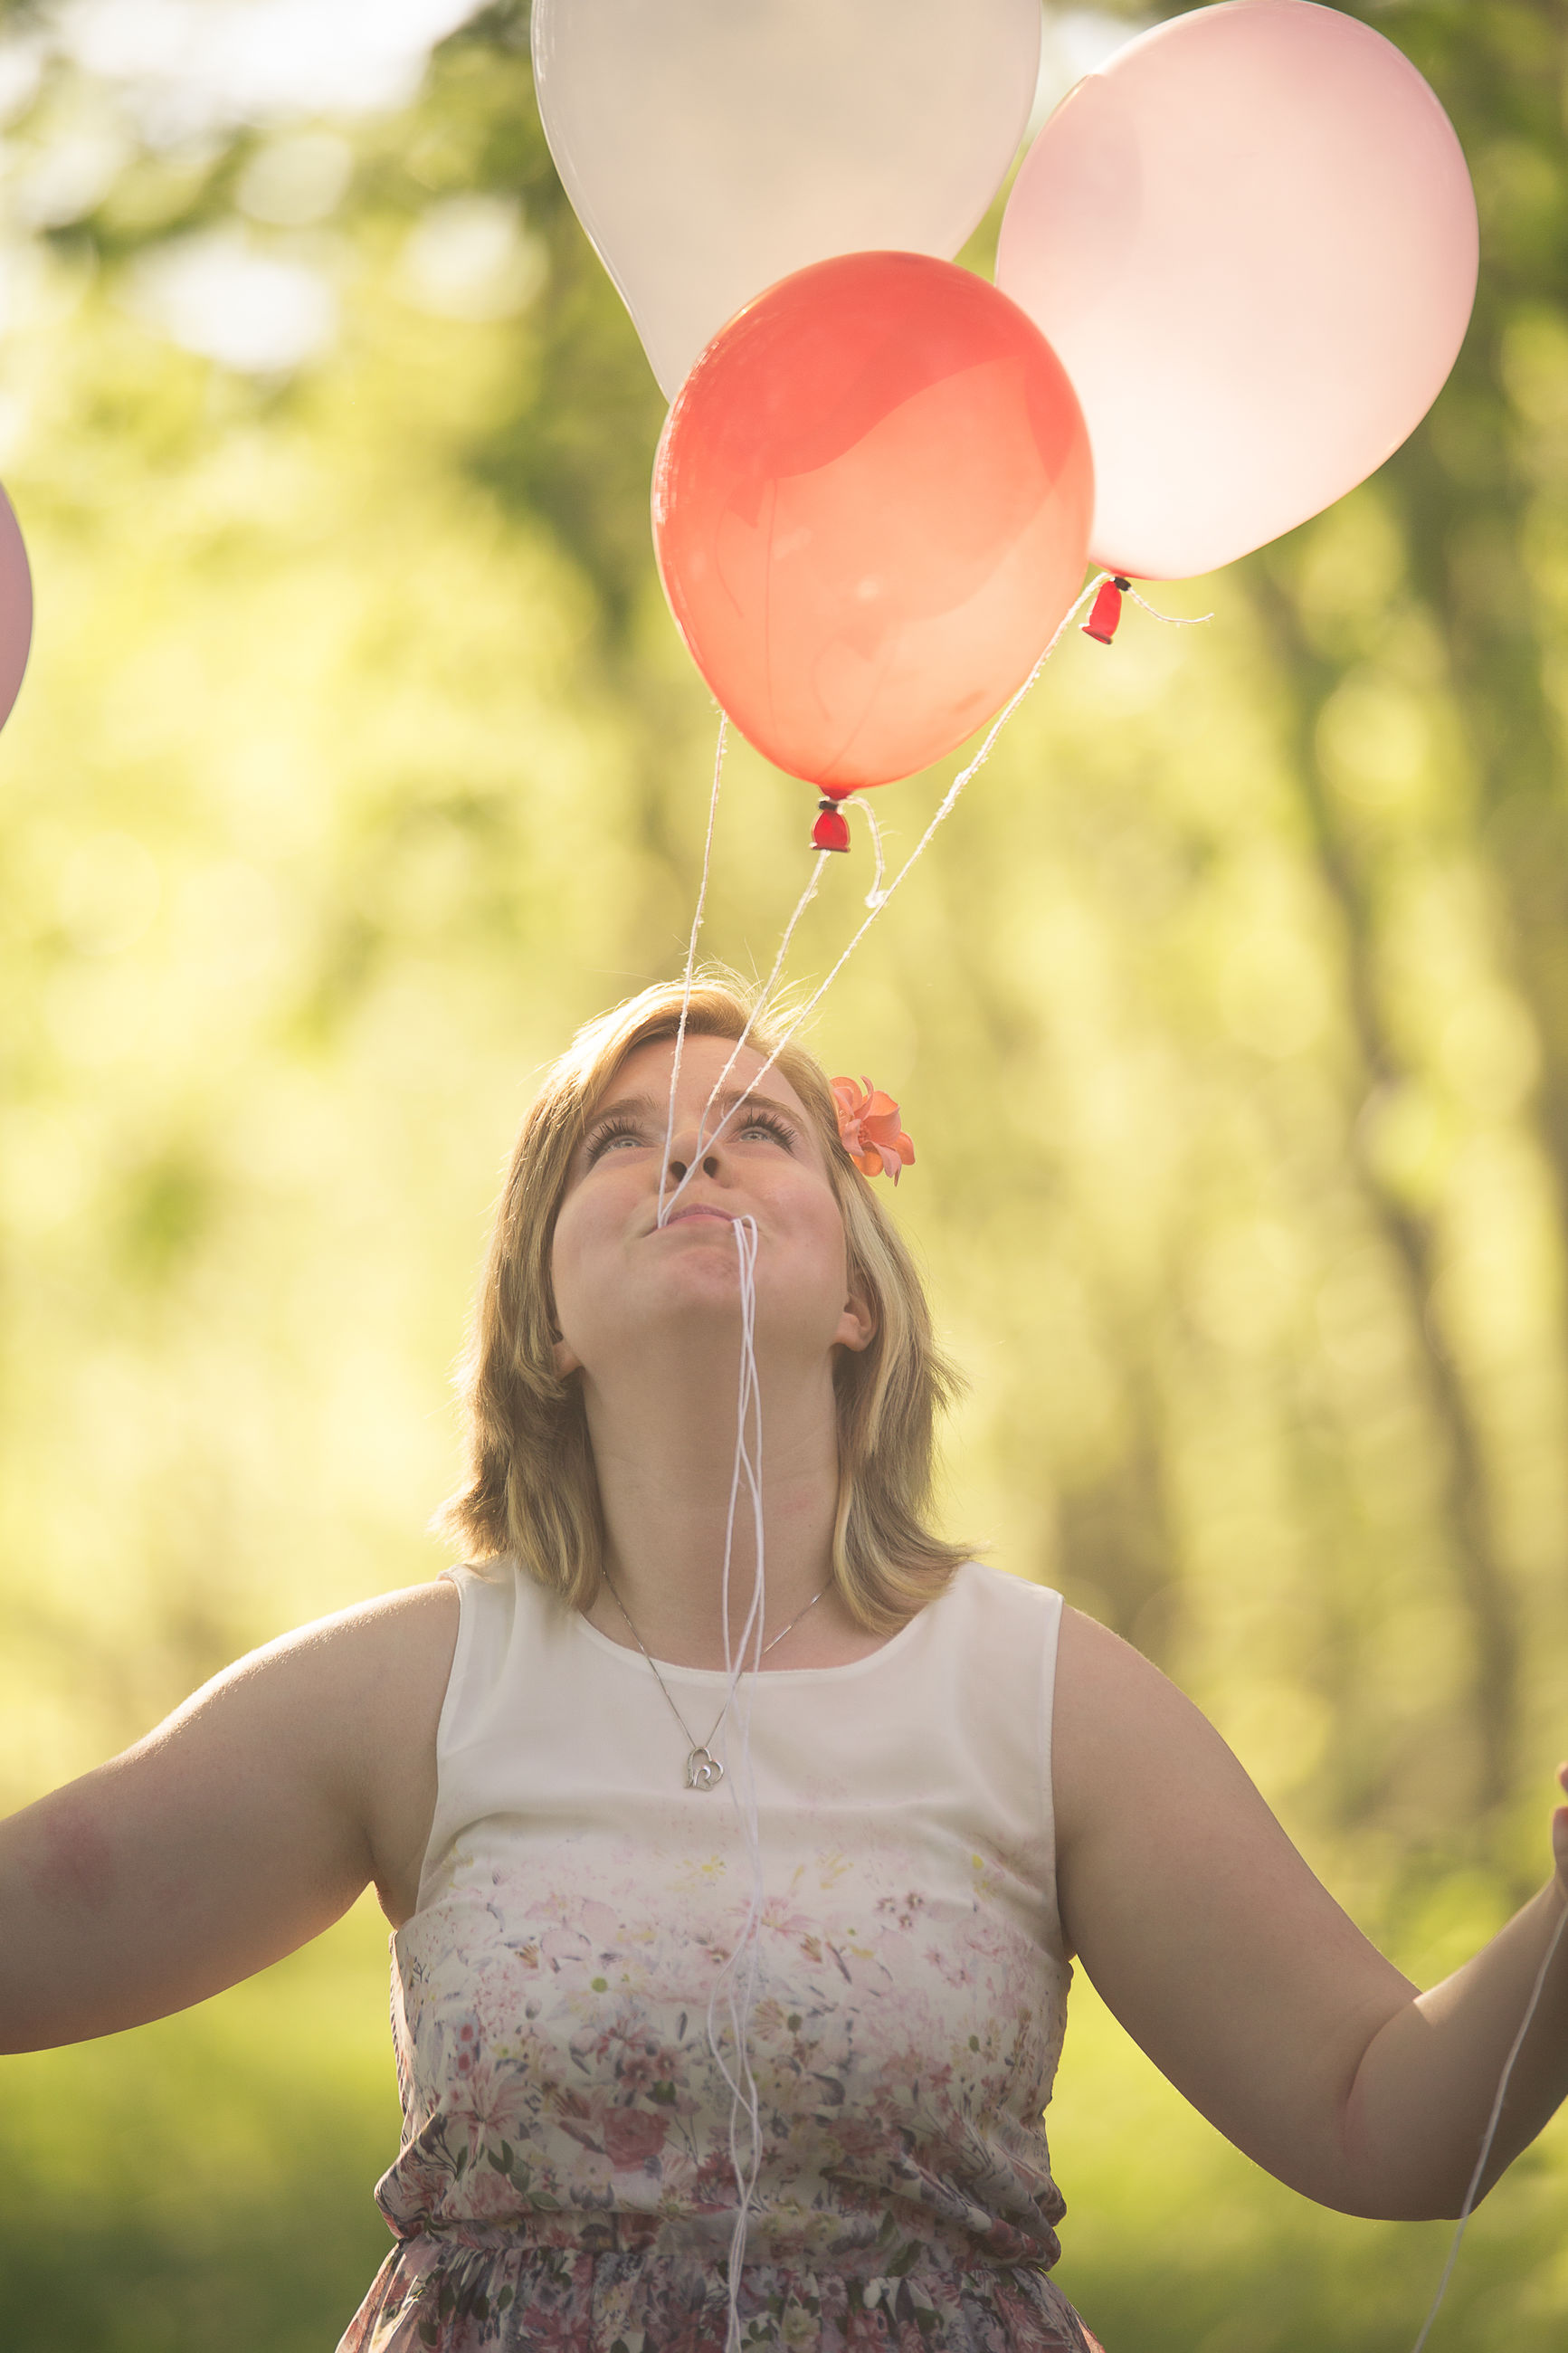 balloon, real people, one person, lifestyles, women, focus on foreground, day, leisure activity, helium balloon, females, front view, nature, child, emotion, waist up, portrait, casual clothing, standing, outdoors, positive emotion, hairstyle